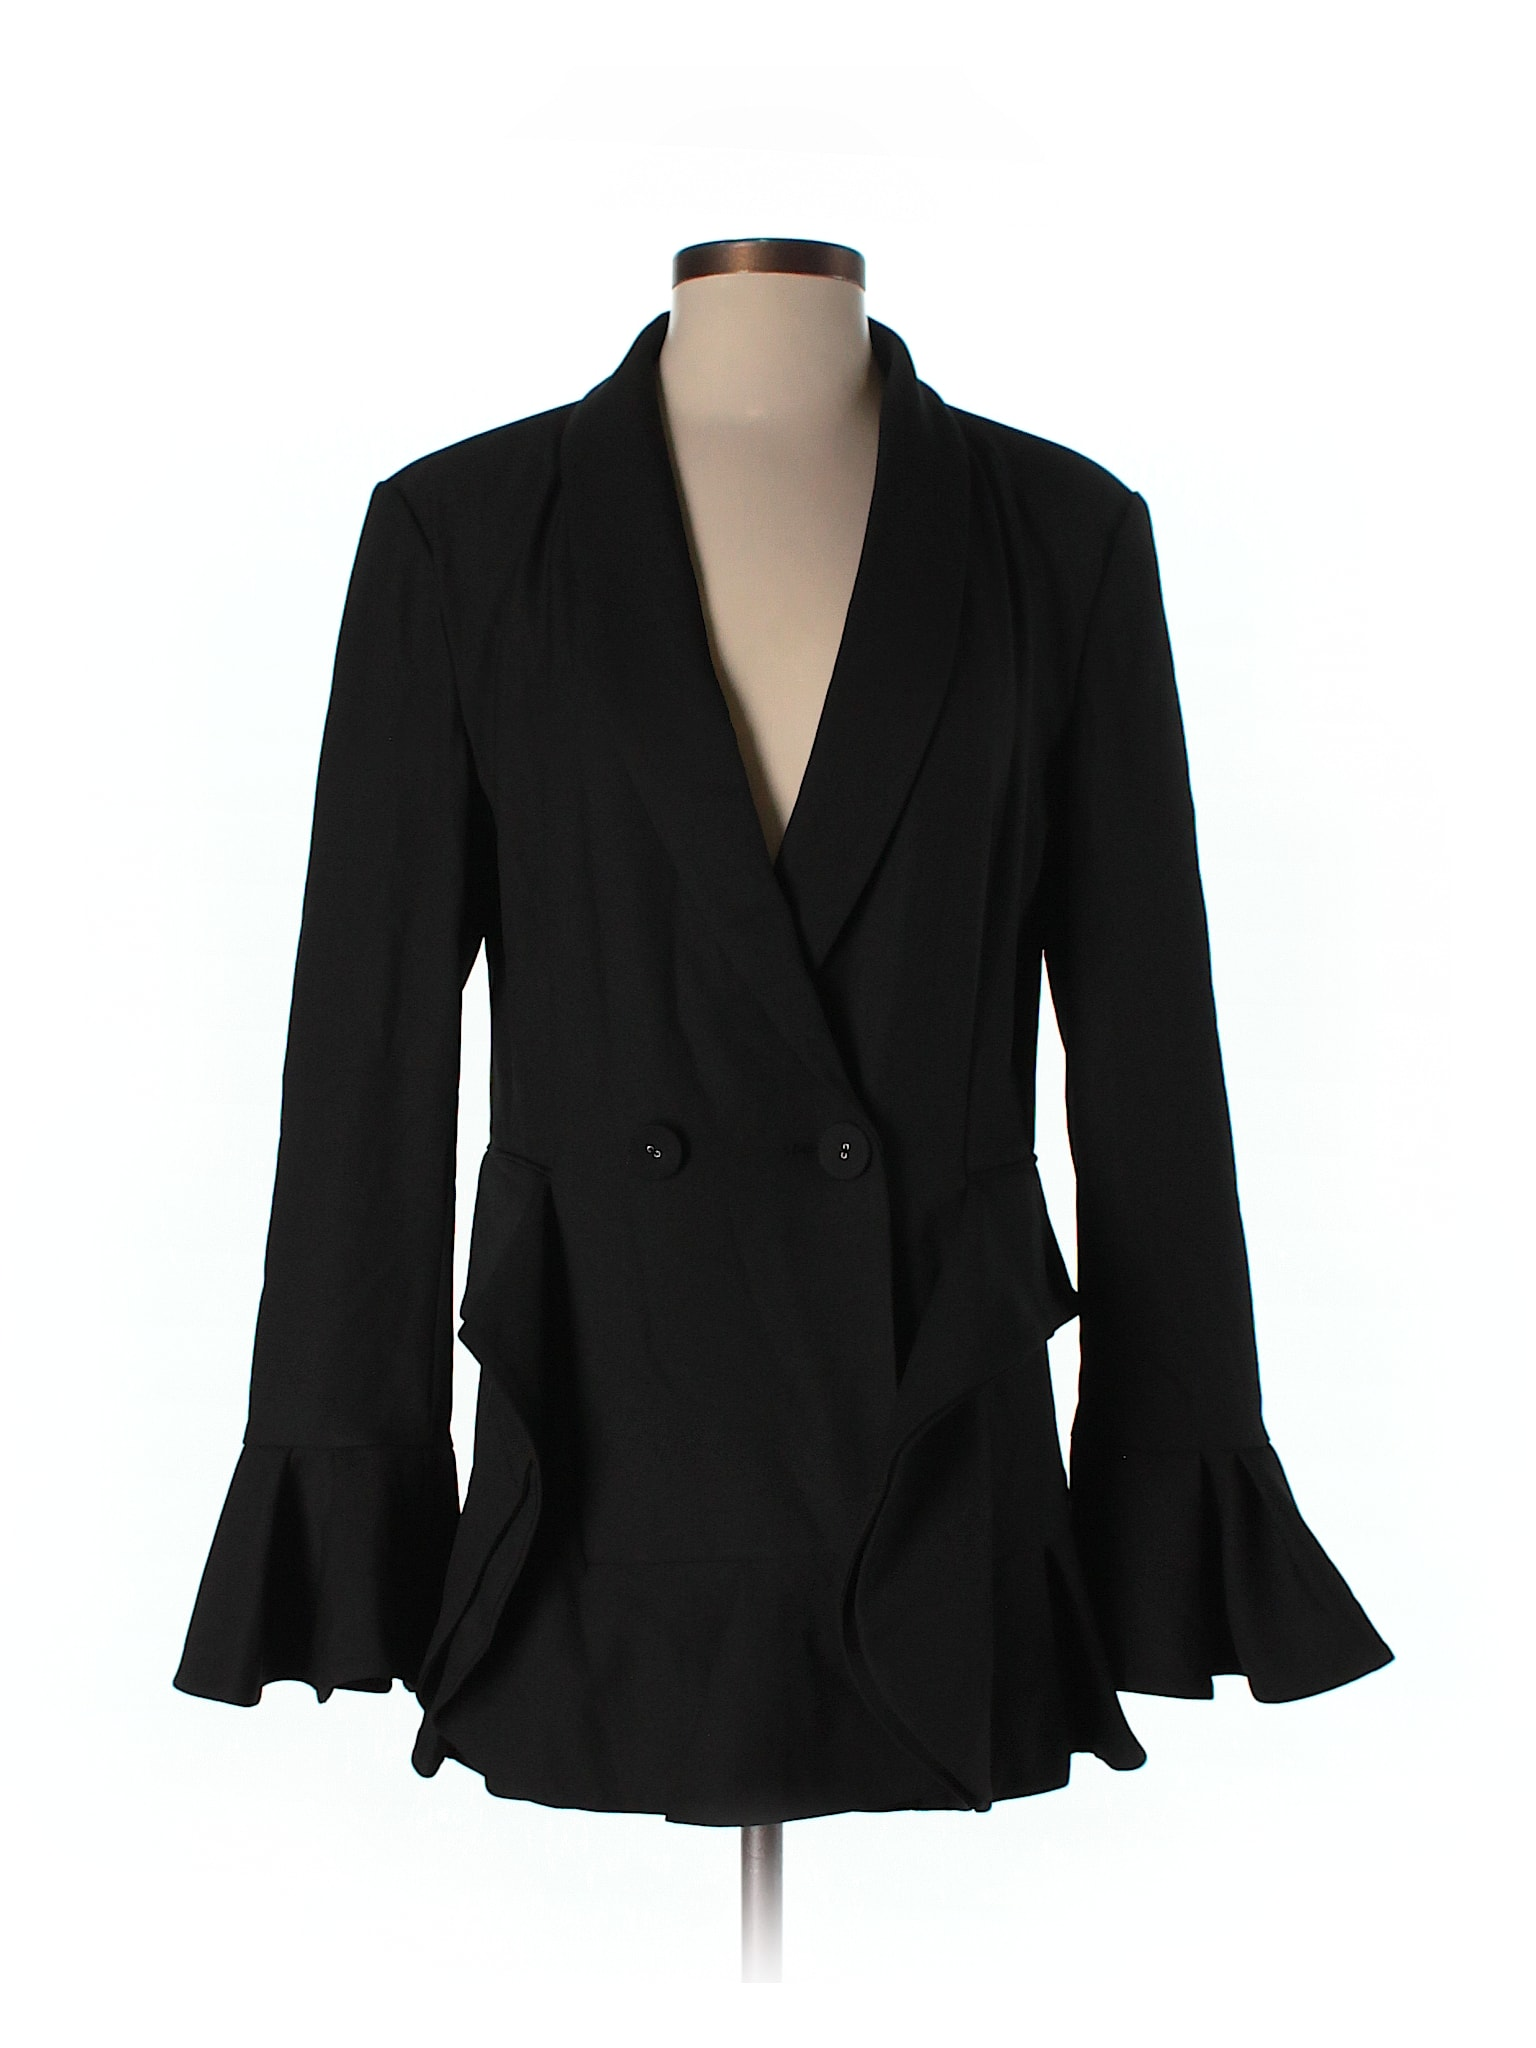 C/MEO Collective Blazer  - As seen on GMA!